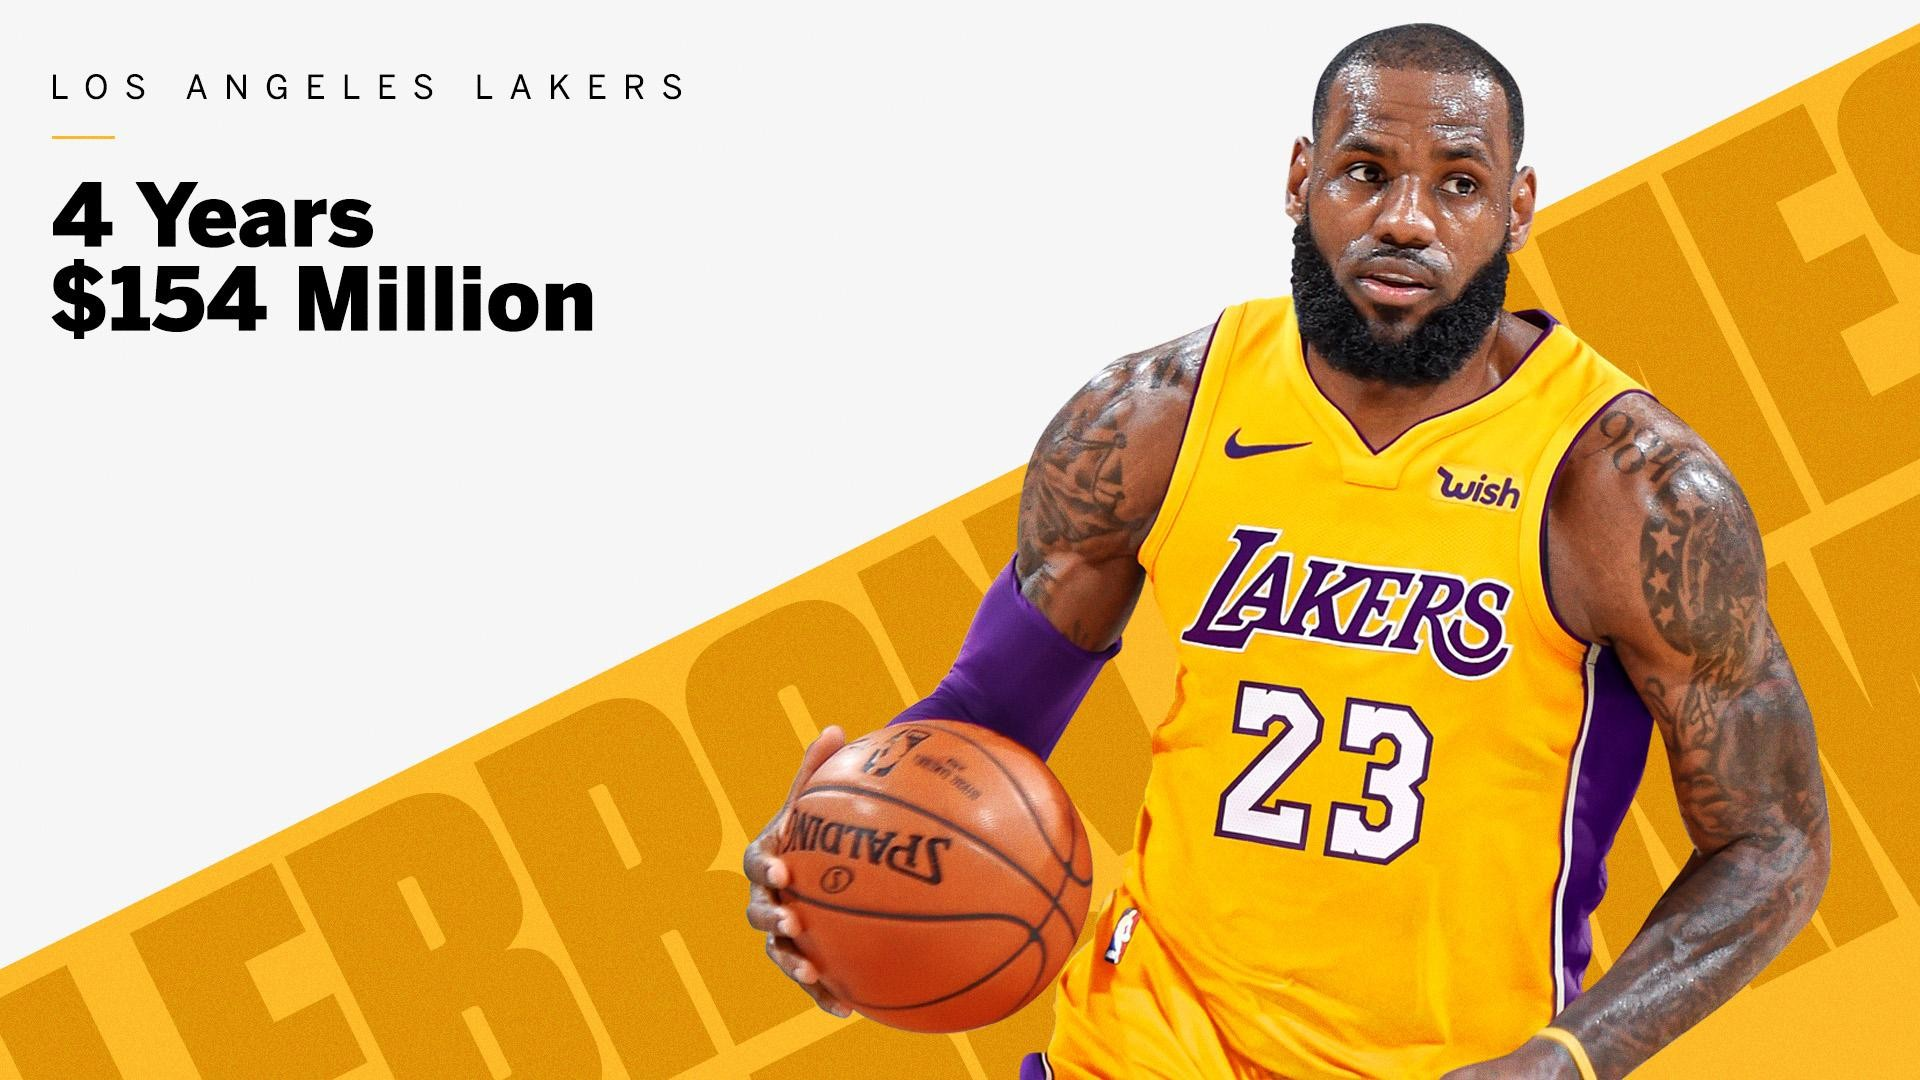 66b83067c1a0 NBA star LeBron James has agreed to join Los Angeles Lakers on a four-year  contract for  154million  from Cleveland Cavaliers.